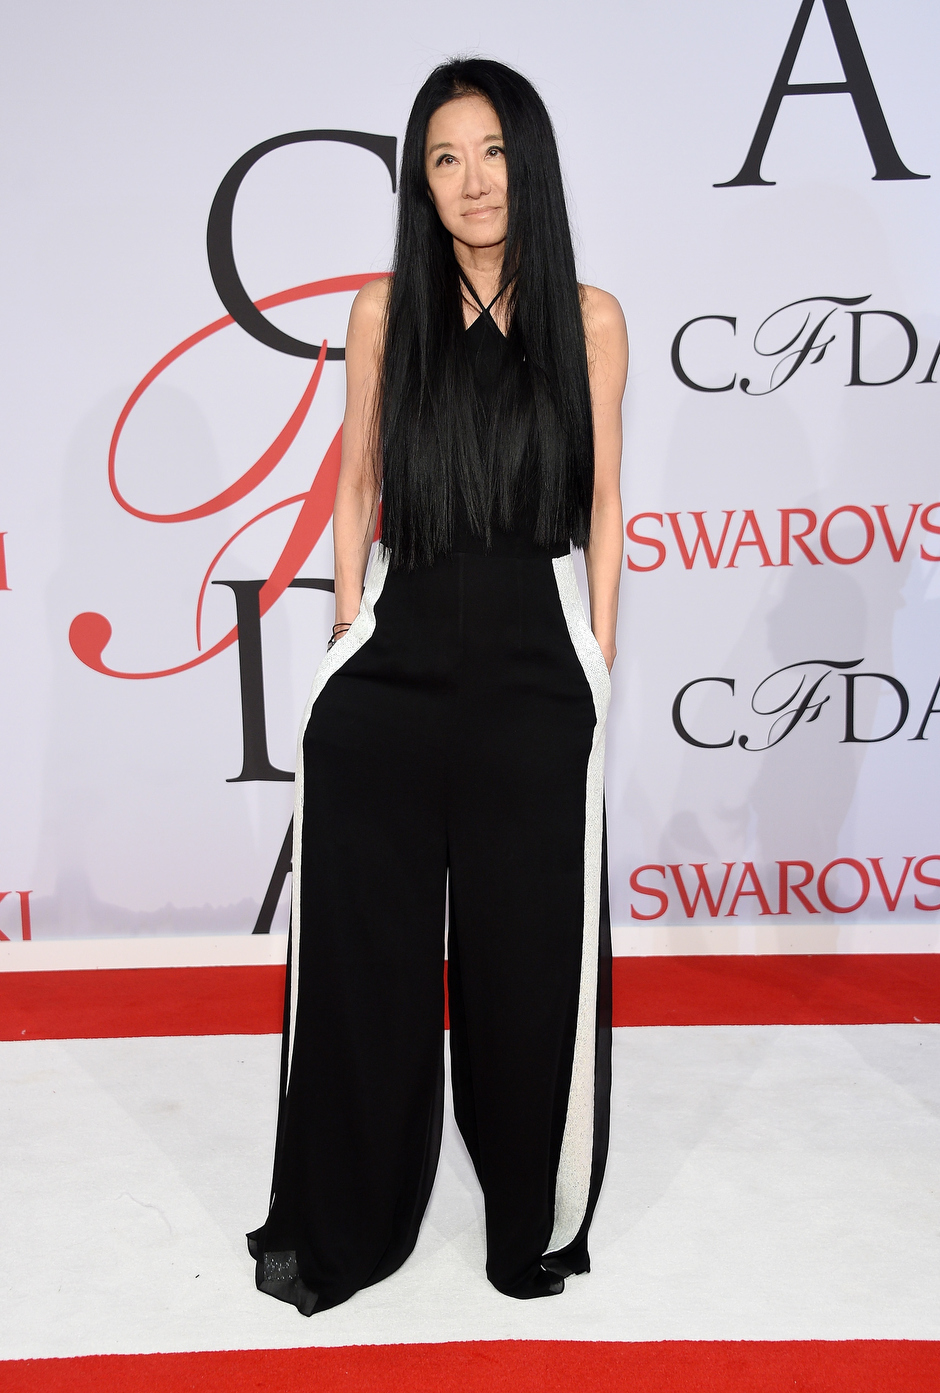 . Designer Vera Wang attends the 2015 CFDA Fashion Awards  at Alice Tully Hall at Lincoln Center on June 1, 2015 in New York City.  (Photo by Dimitrios Kambouris/Getty Images)